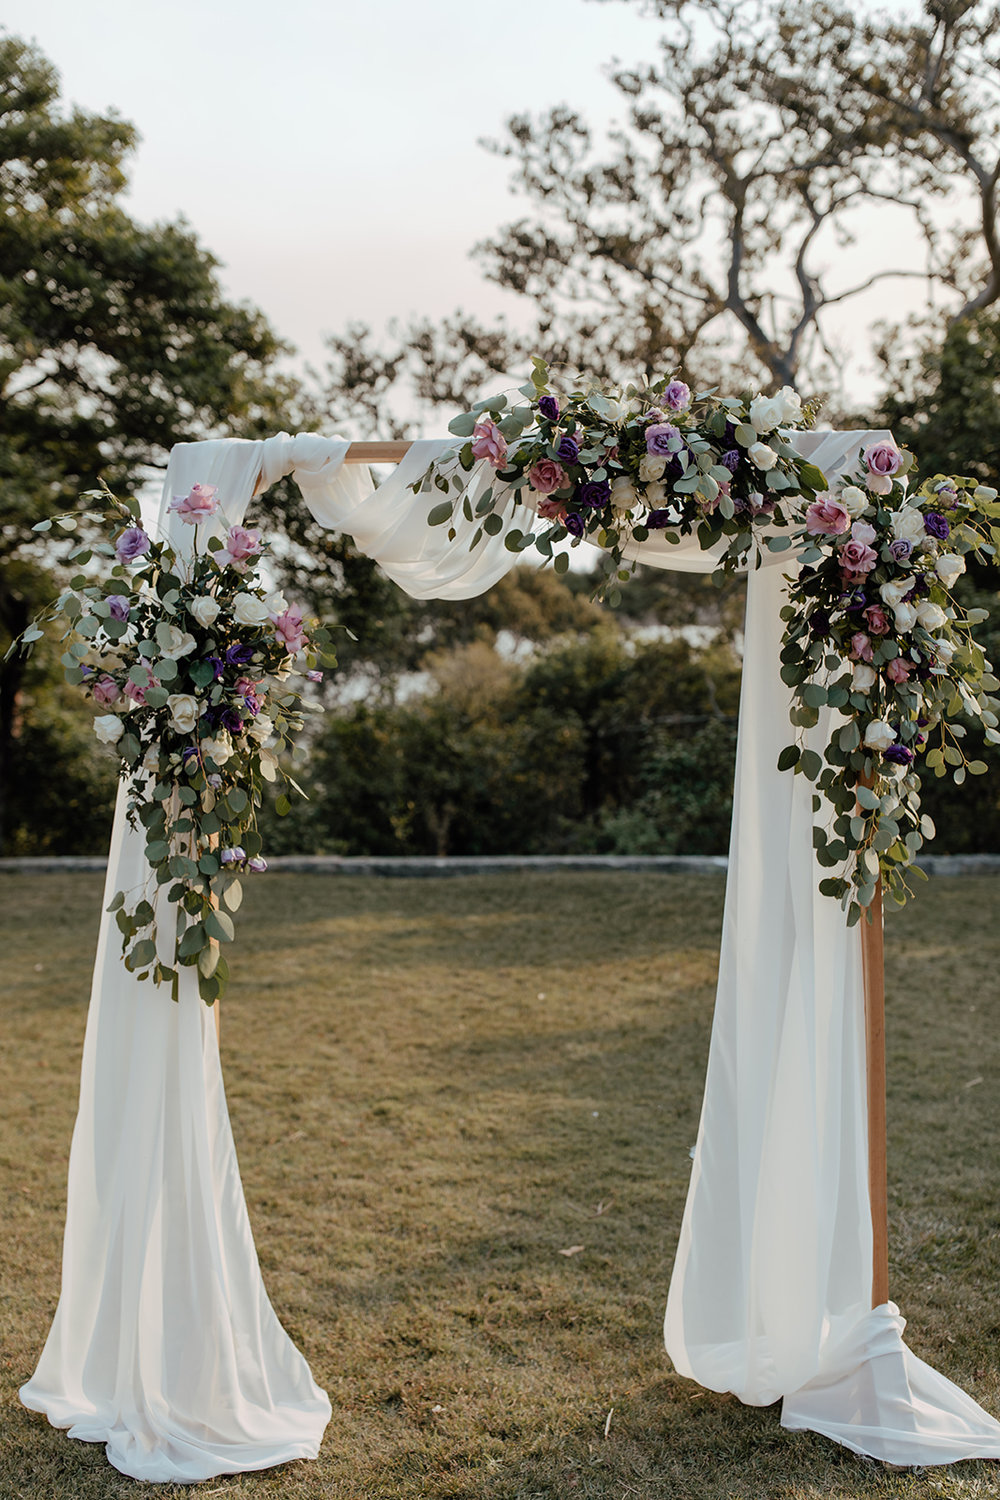 Wedding arch with draping.jpg